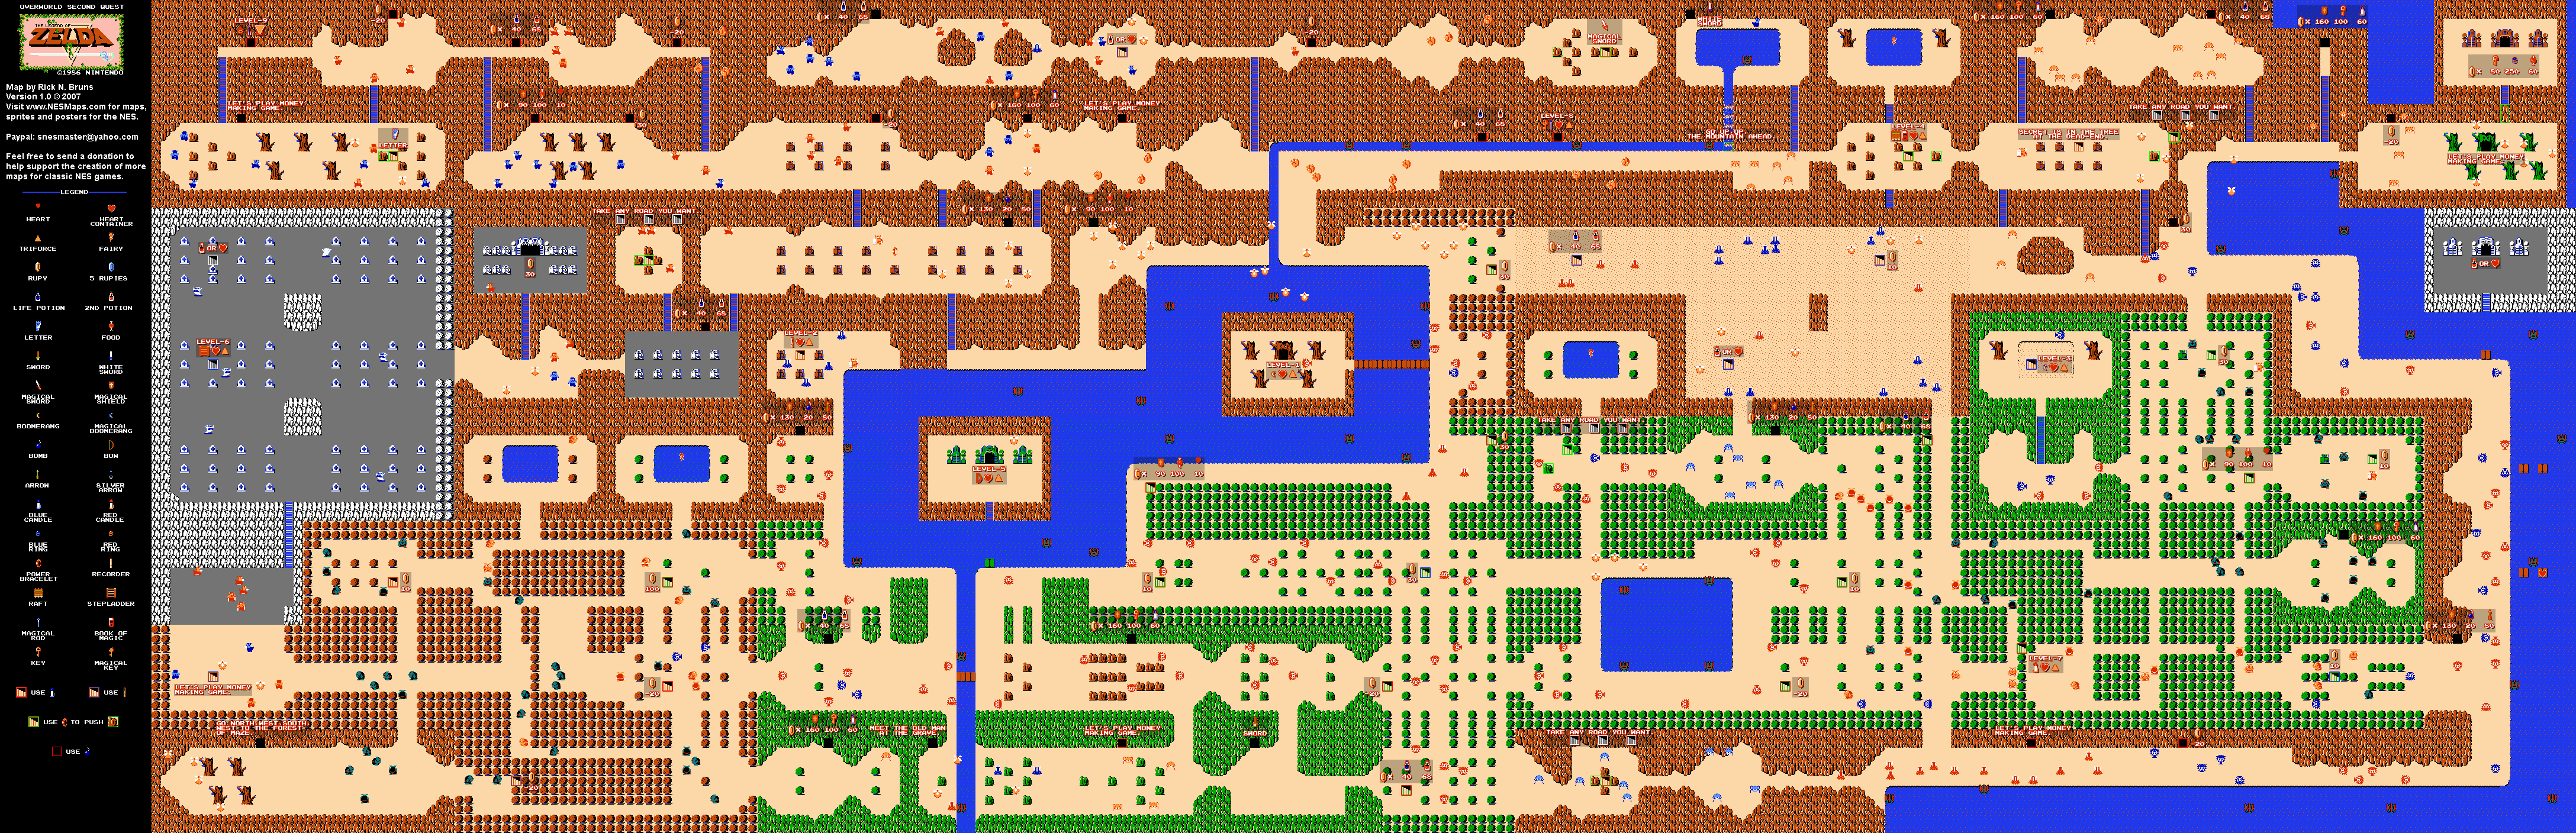 the legend of zelda  overworld quest   nes map. the legend of zelda  overworld quest  map